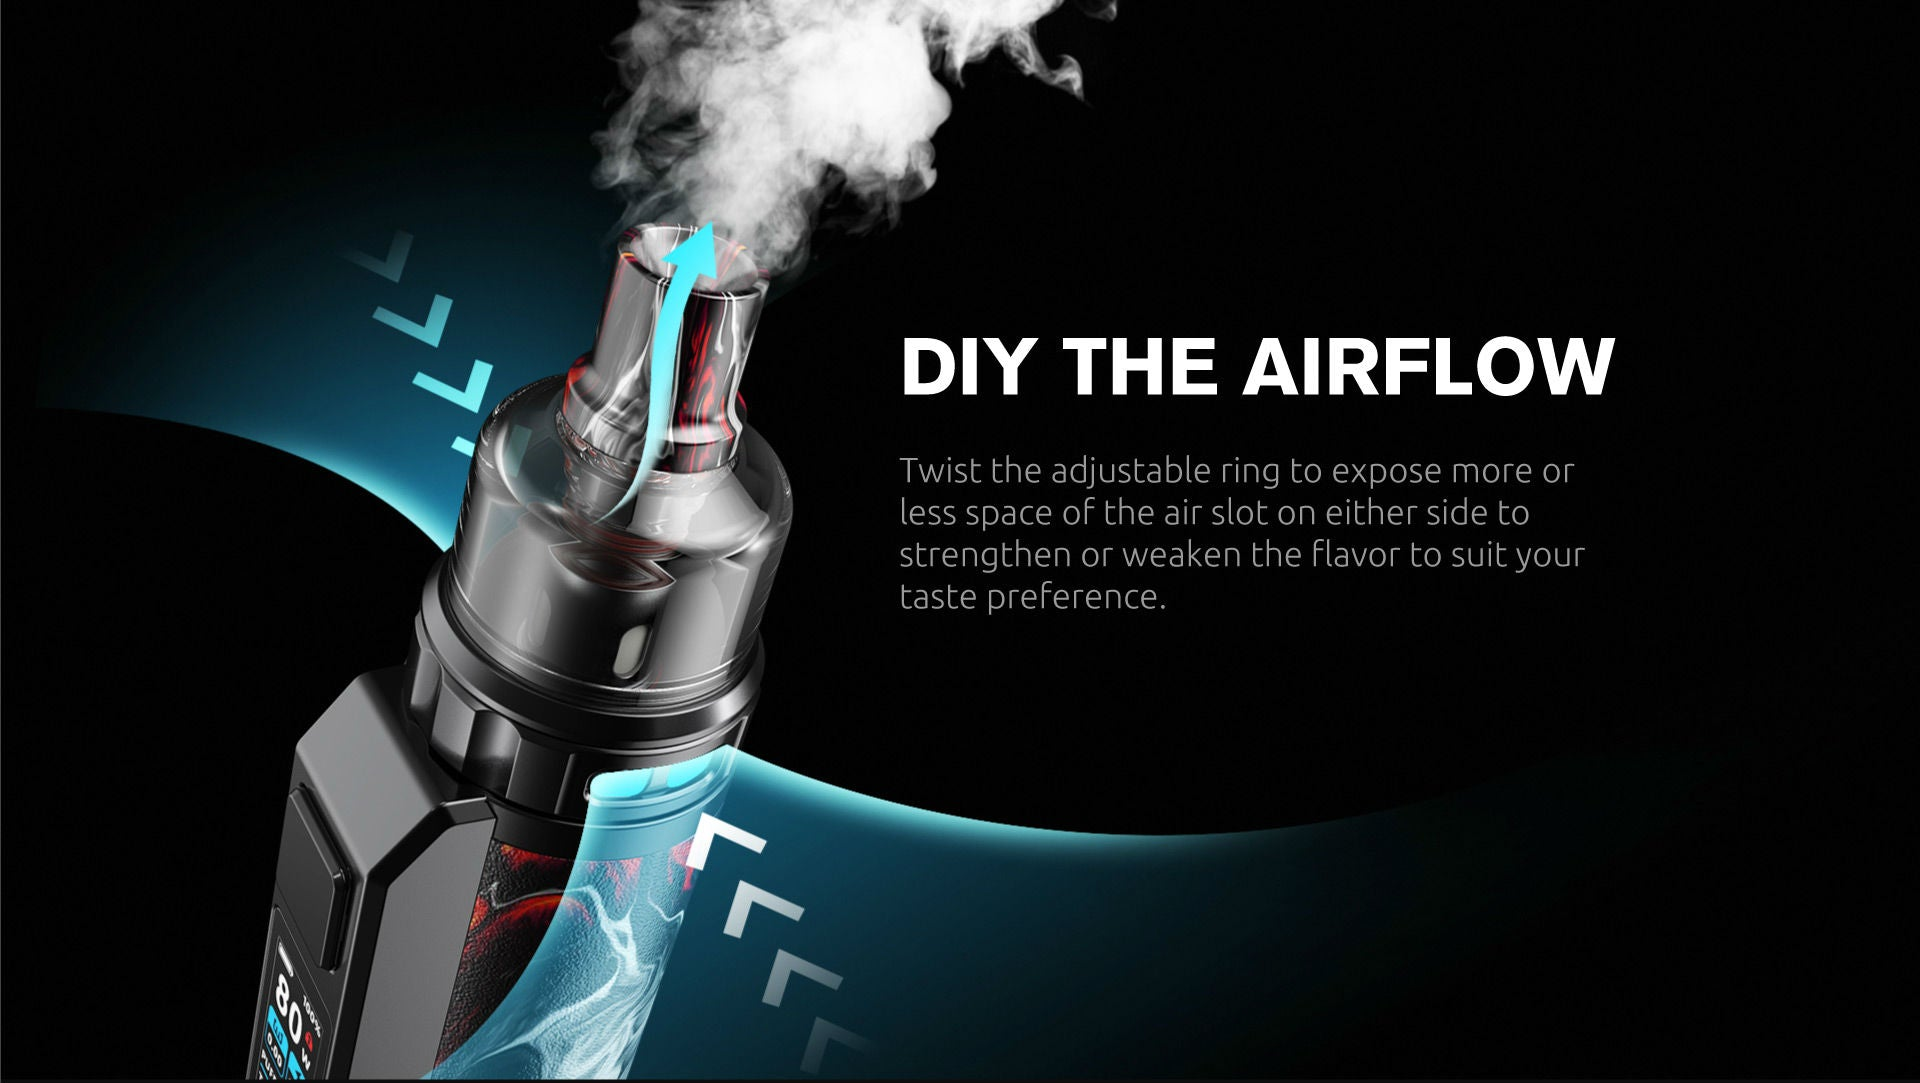 Twist to adjust and suit your taste + vaping preference